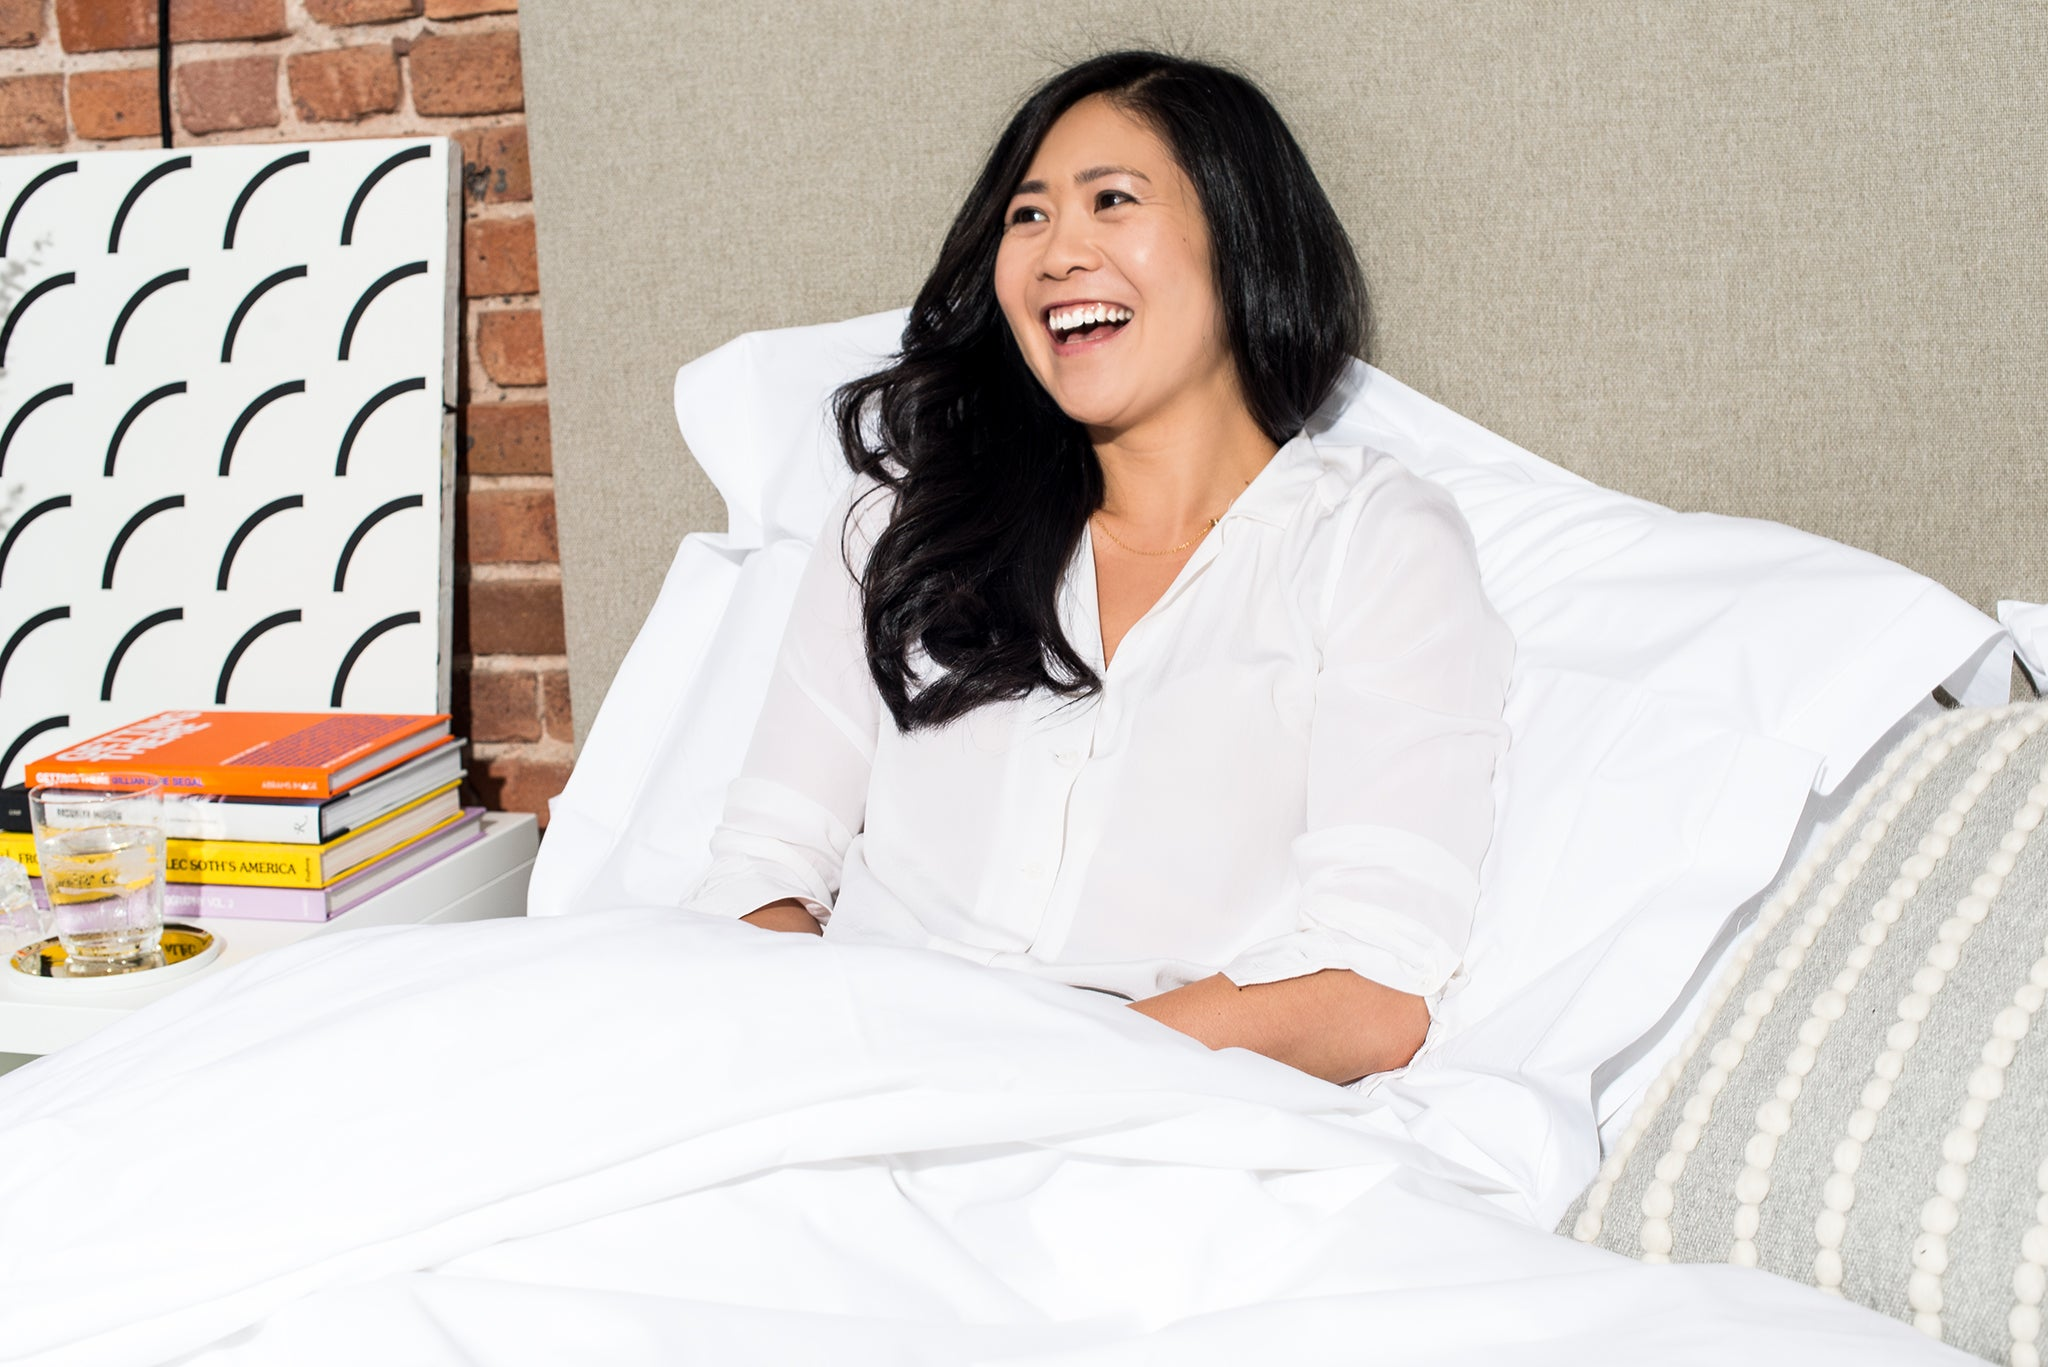 Every bedroom needs comfort and personality according to Tze.